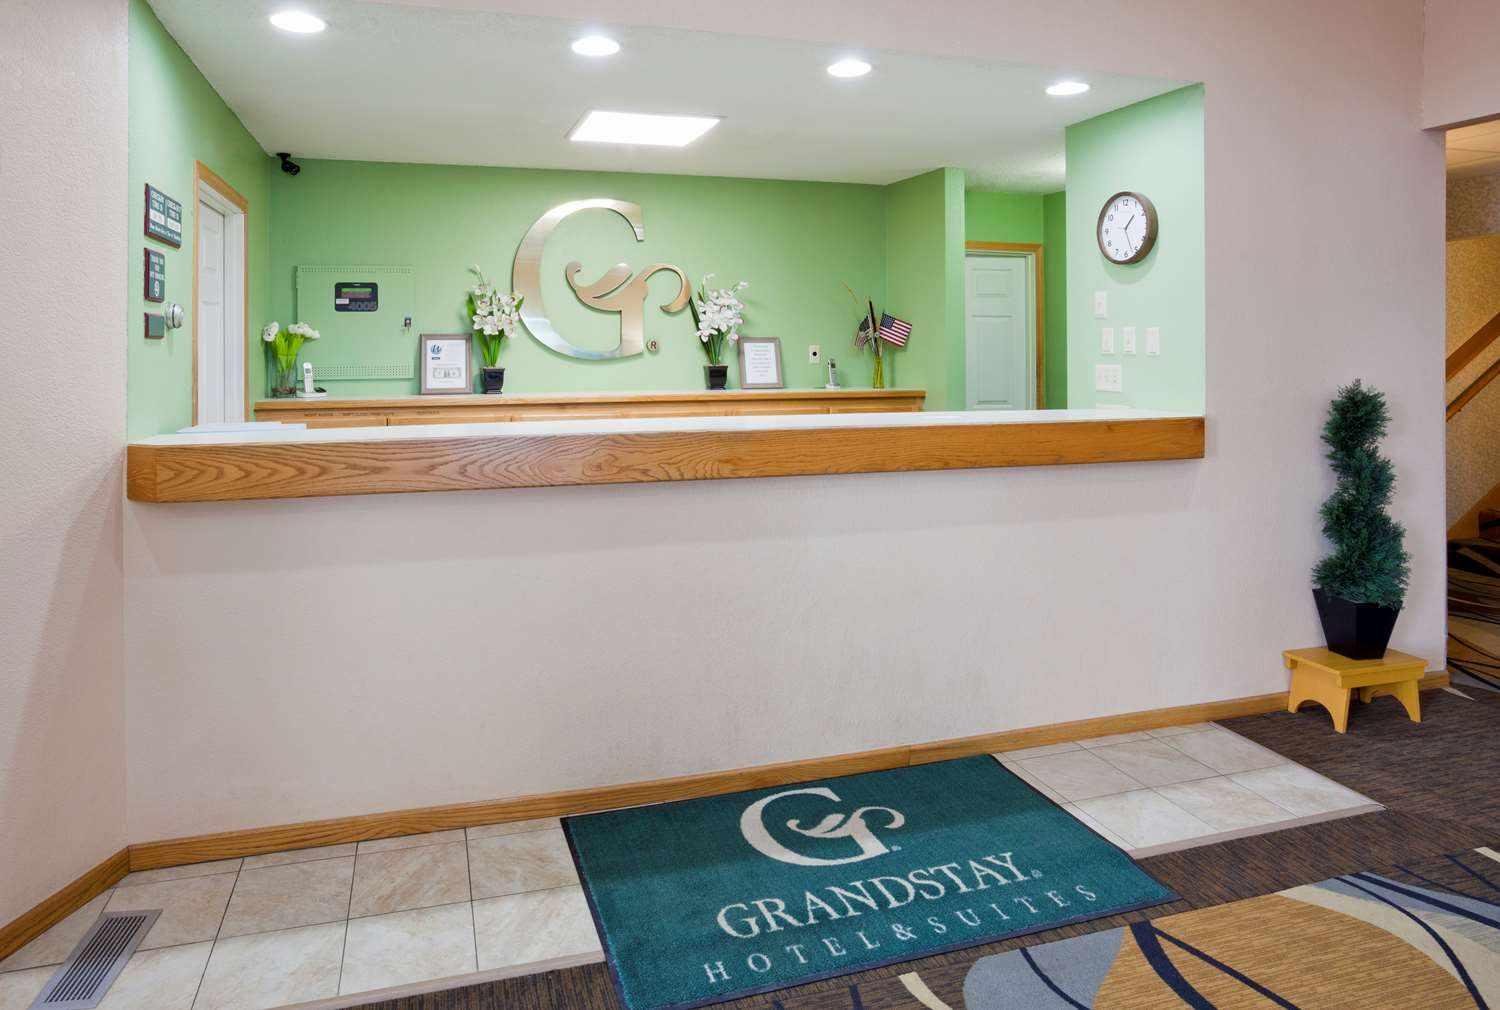 Lobby - GrandStay Hotel & Suites Waseca